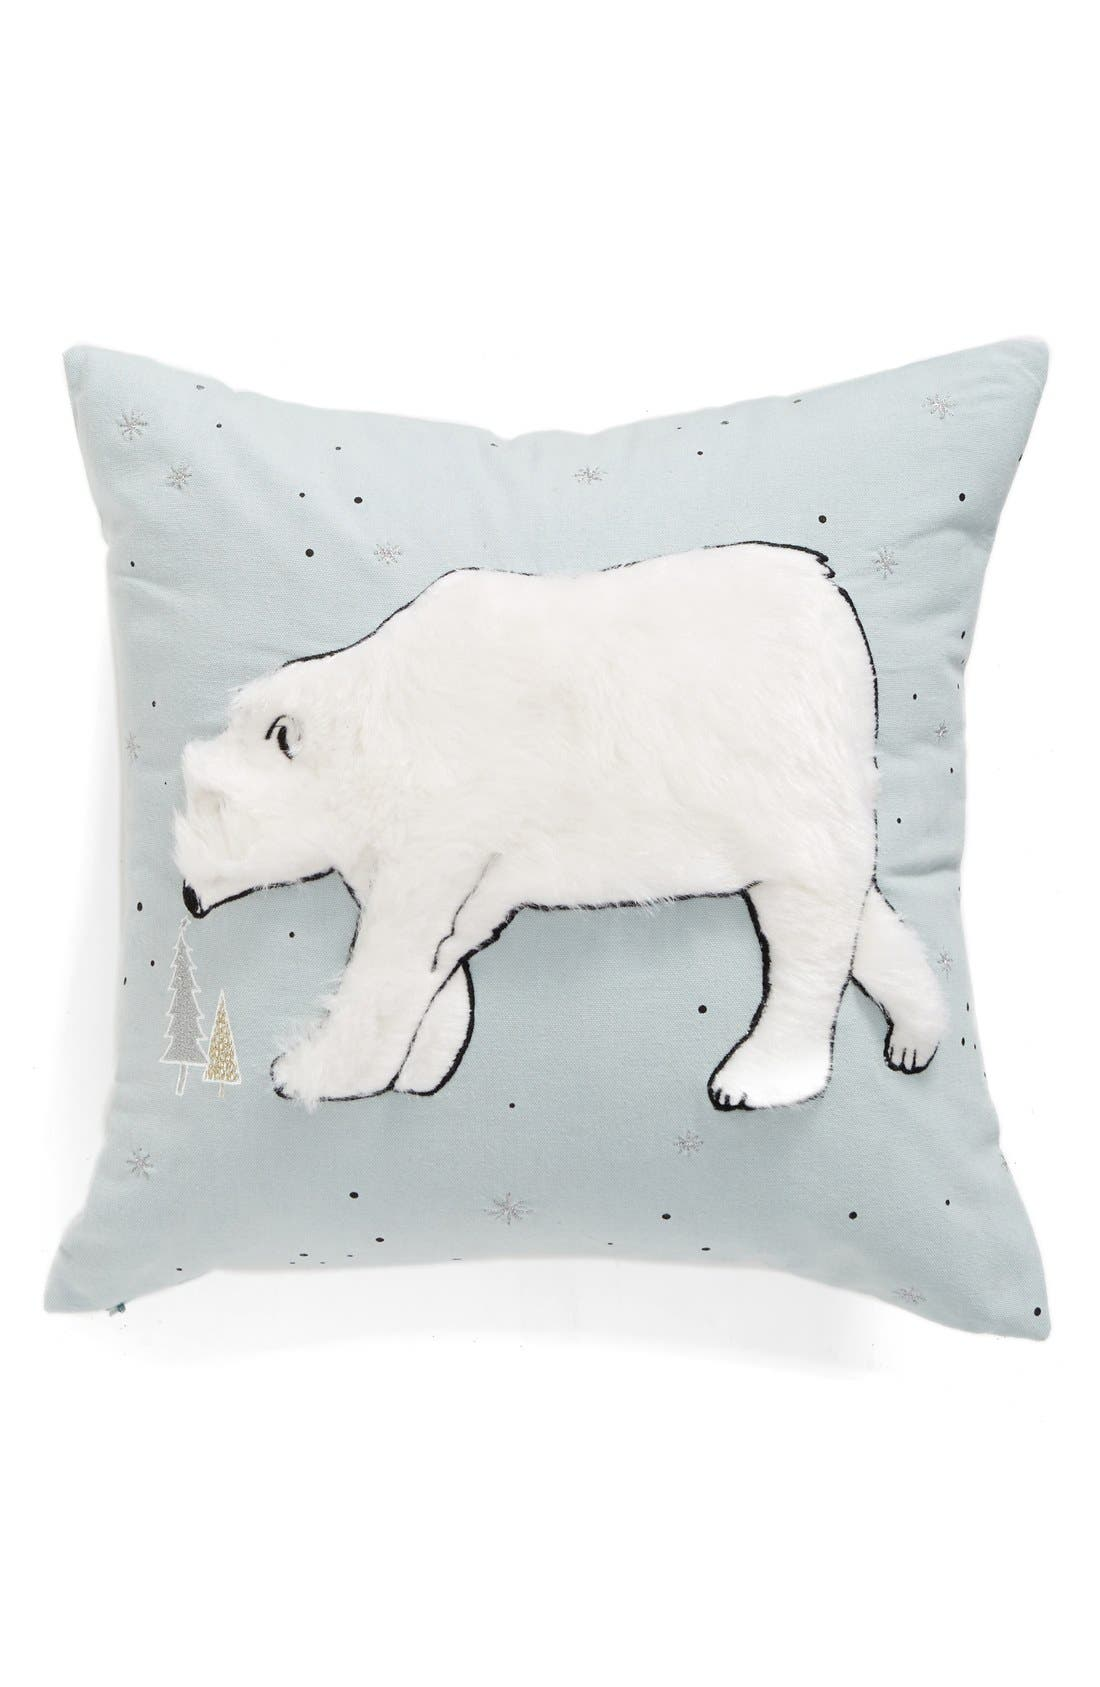 Winter Bear Pillow,                             Main thumbnail 1, color,                             Teal Mist Multi